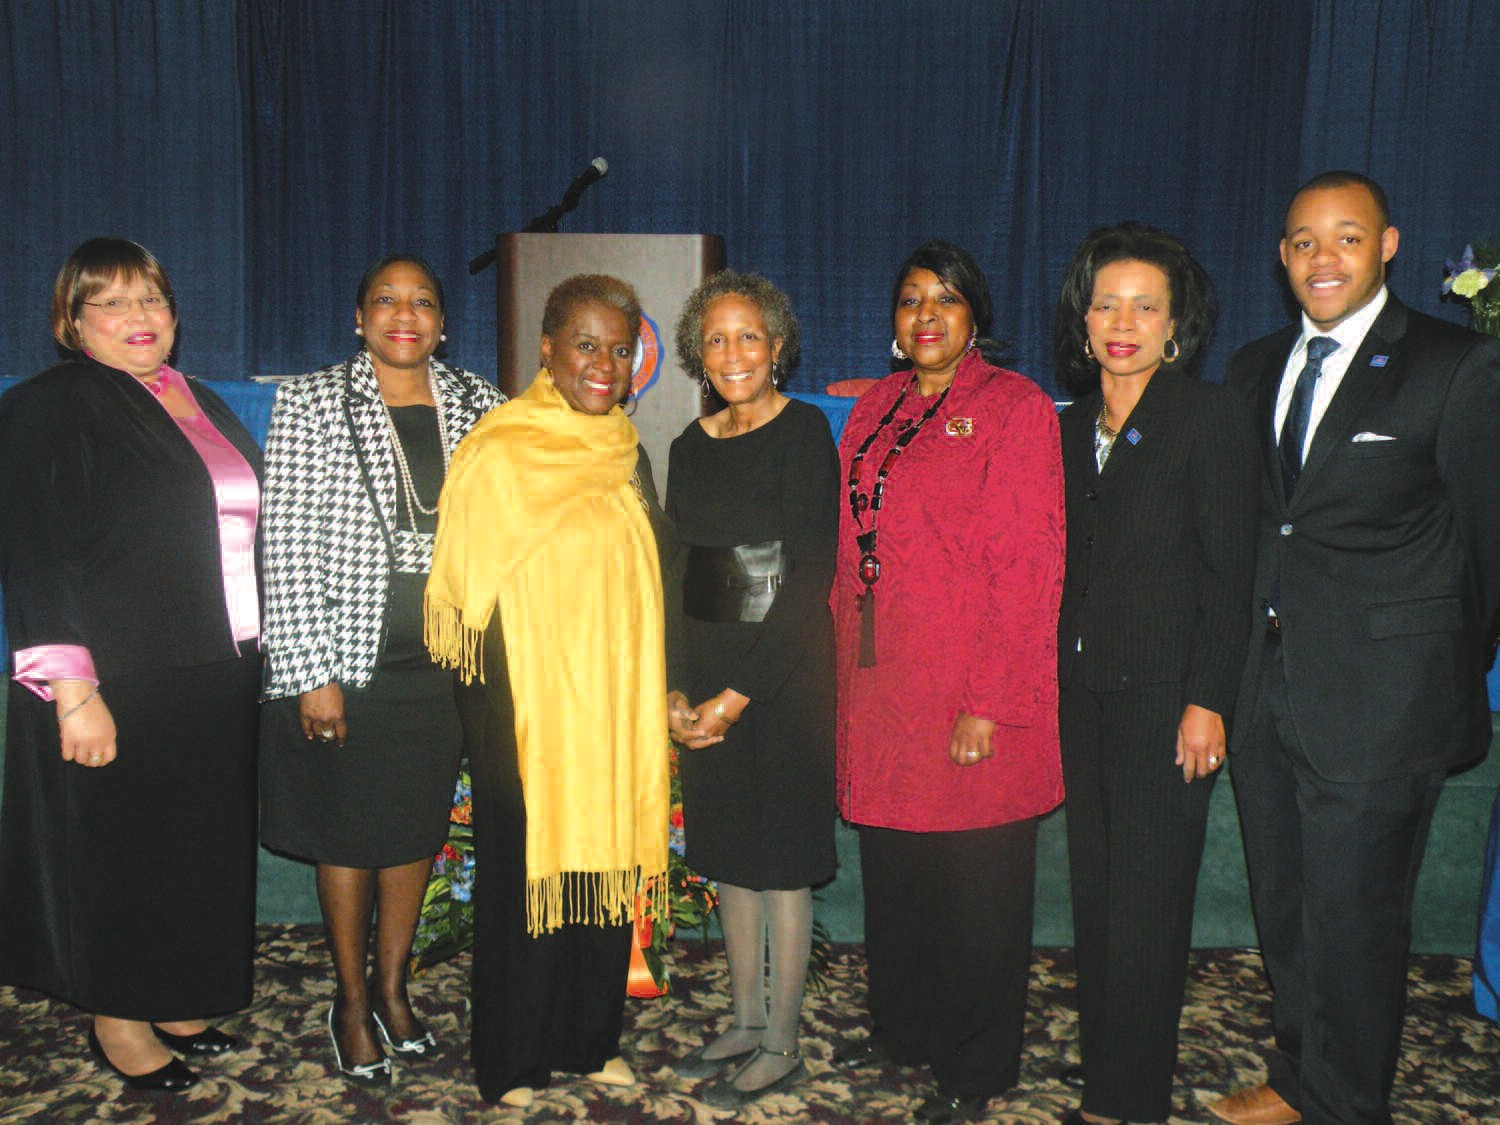 L-R: Rev. Marilyn Felder, Dean Jane Gates, College of Liberal Arts and Social Sciences, Betty Baye', Dr Carmen Manning Miller, Department Chair, Mass Communications, Edna Jackson, Mary Wyatt, V.P. Academic Affairs, and Eugene Brannon, Student Government President